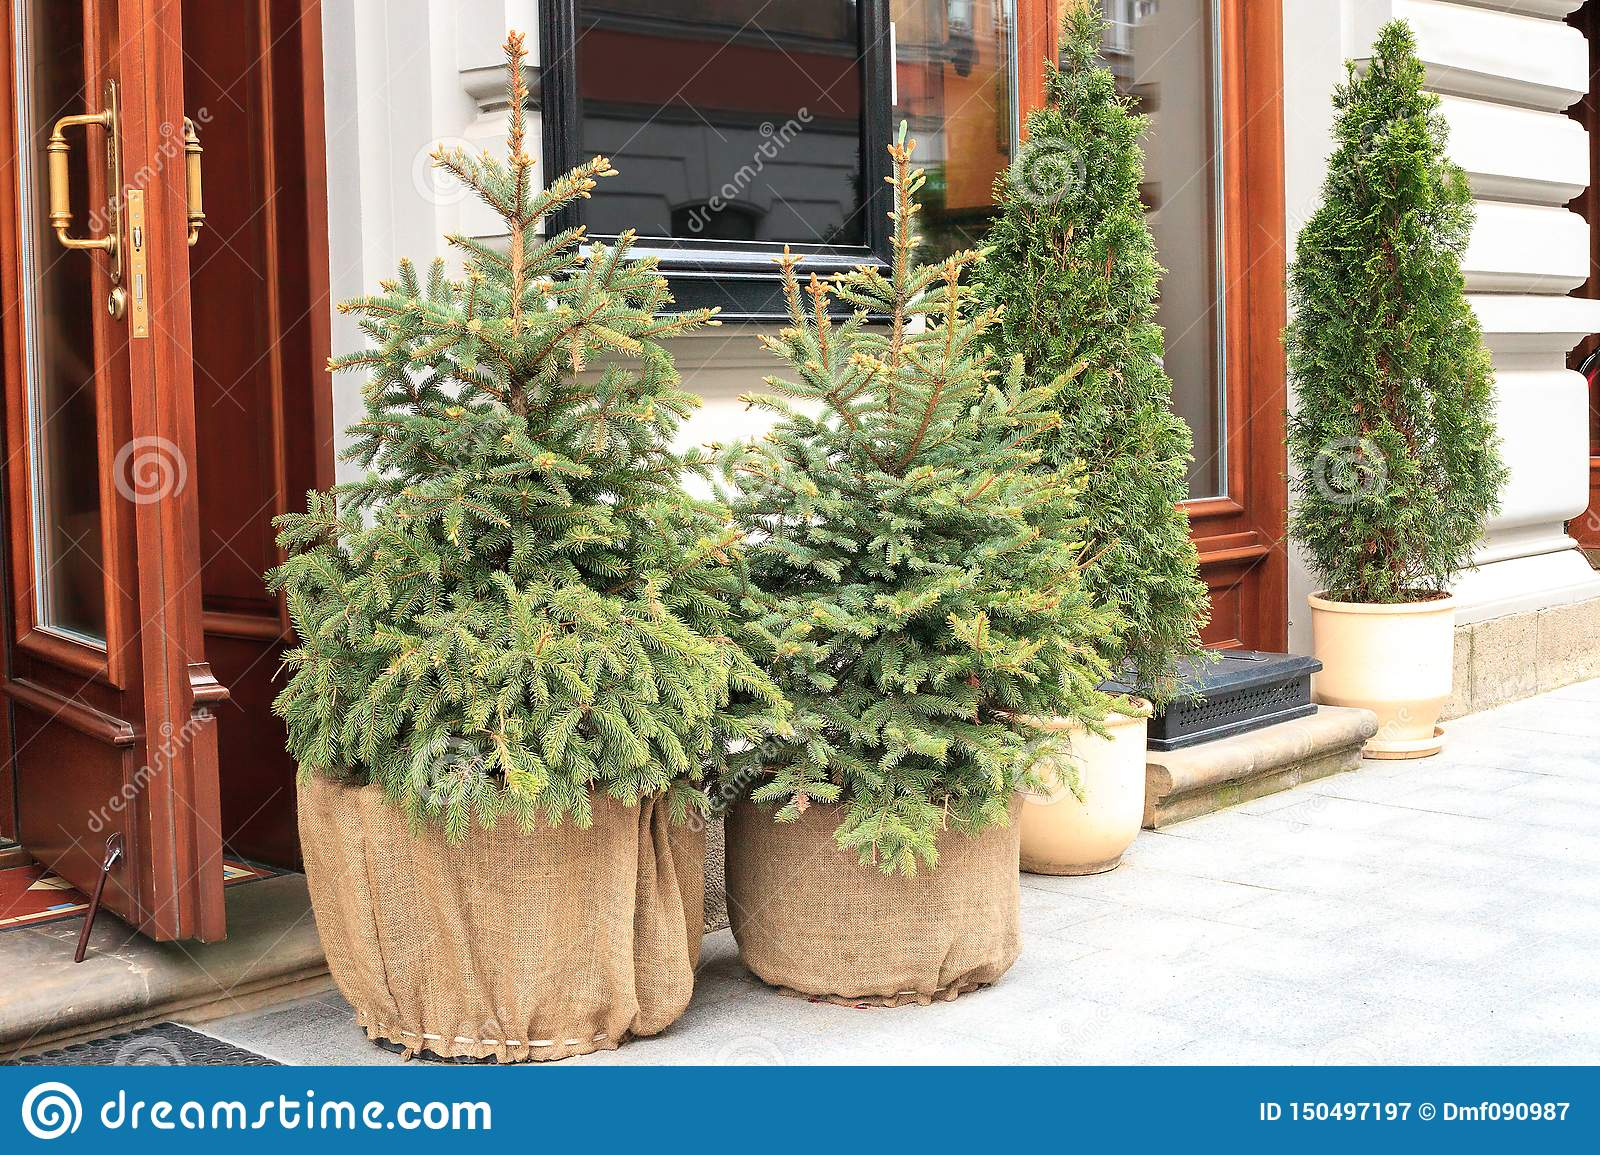 Potted Evergreen Small Christmas Fir Tree Near House, Holidays Decor Stock Image - Image of ...